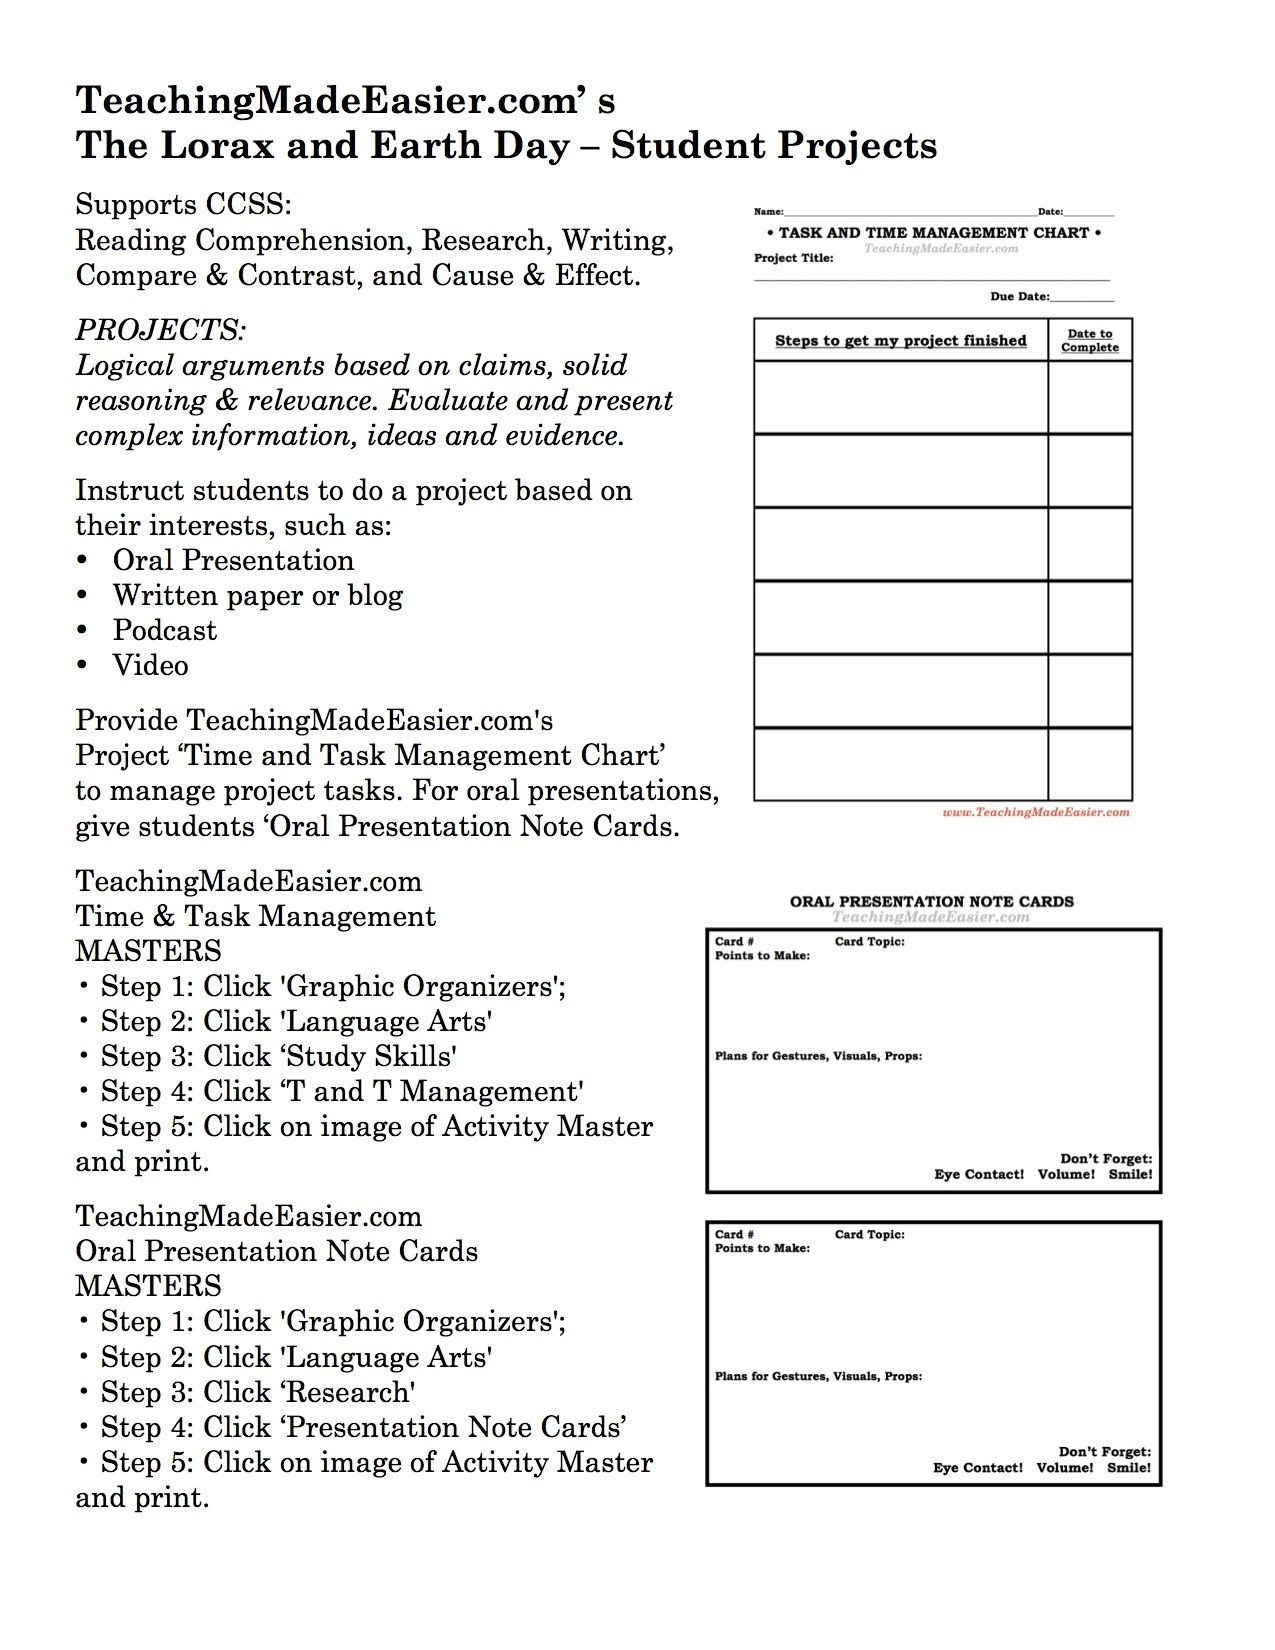 Worksheets Student Worksheet To Accompany The Lorax Cheatslist Free Worksheets For Kids